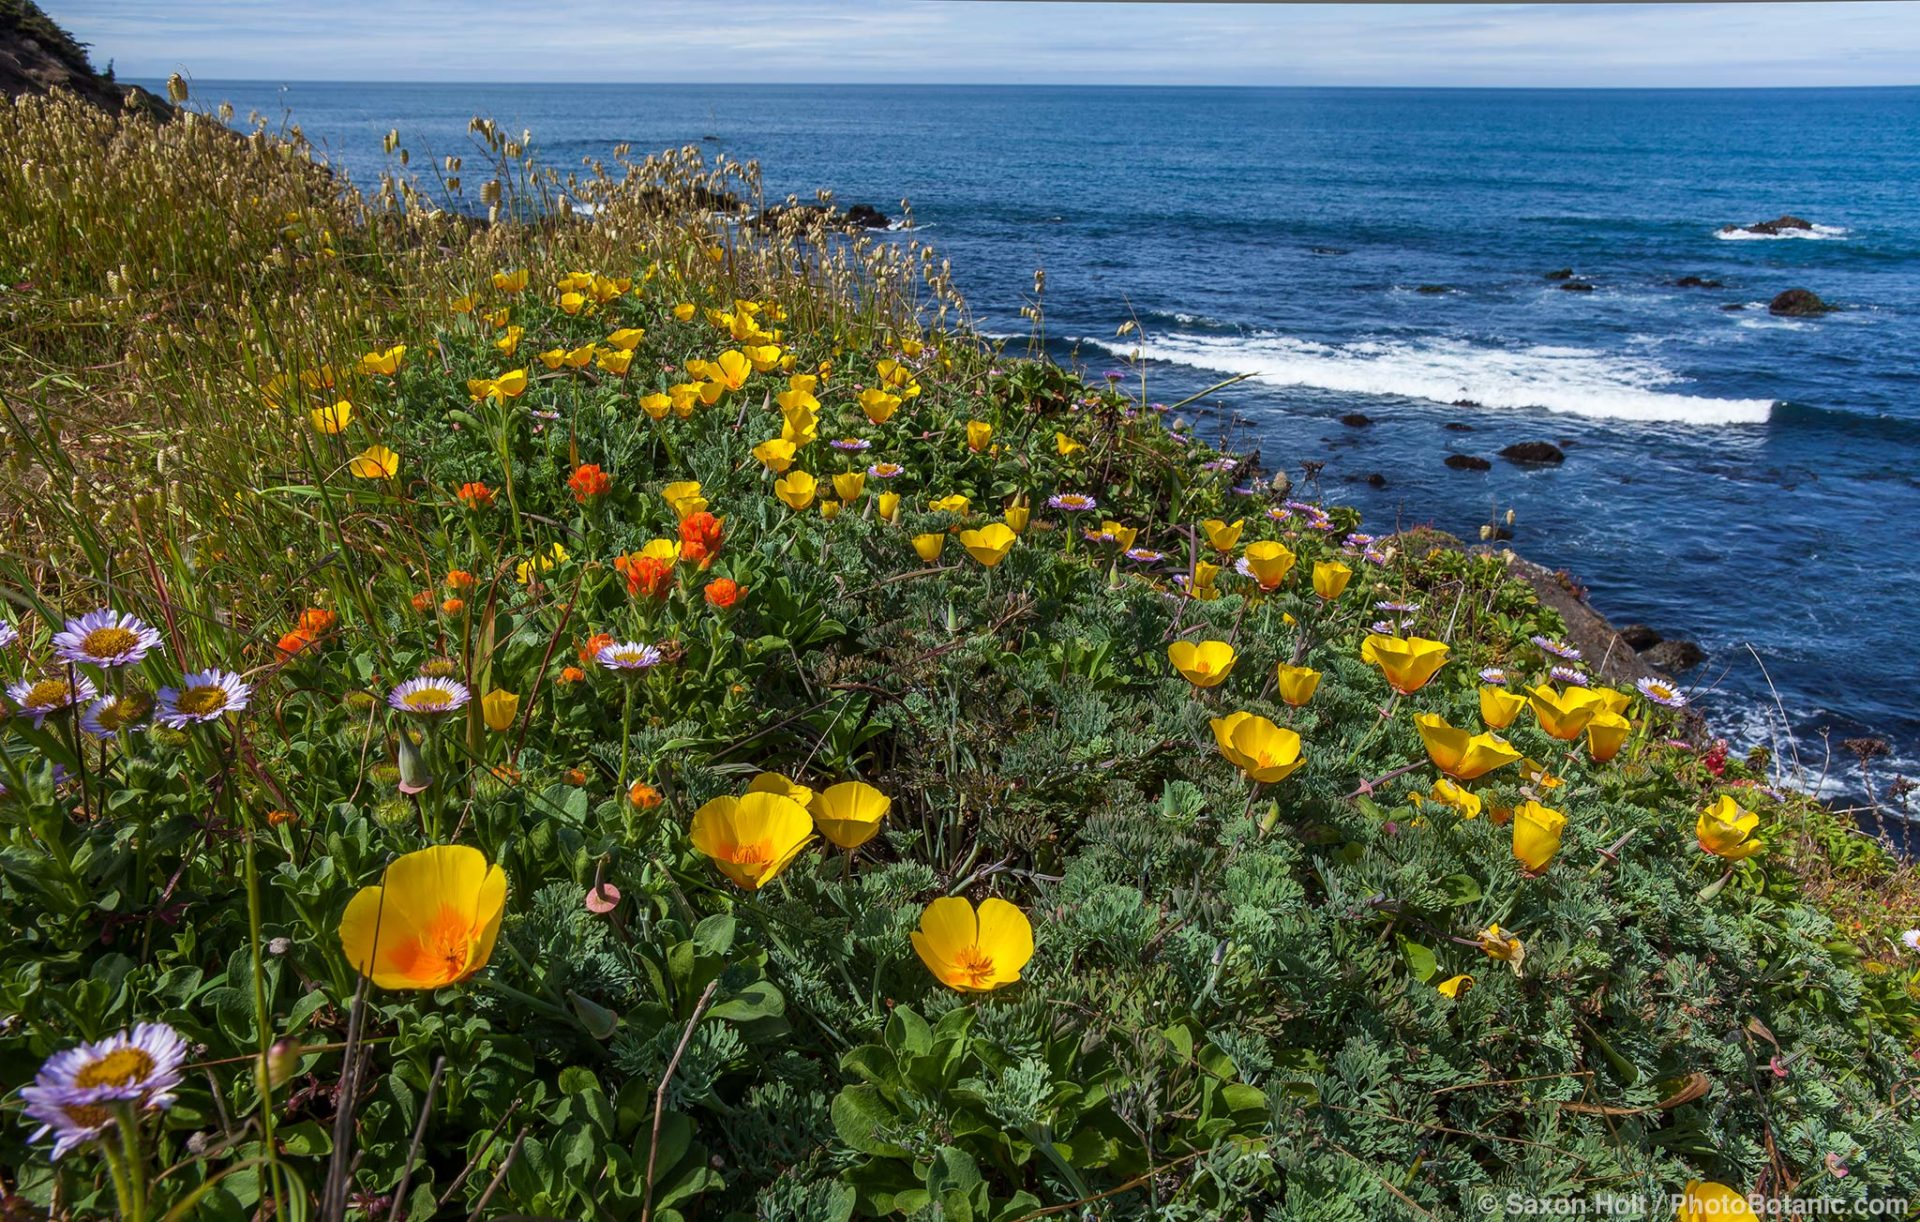 California native wildflowers on coastal bluff overlooking Pacific Ocean at The Sea Ranch